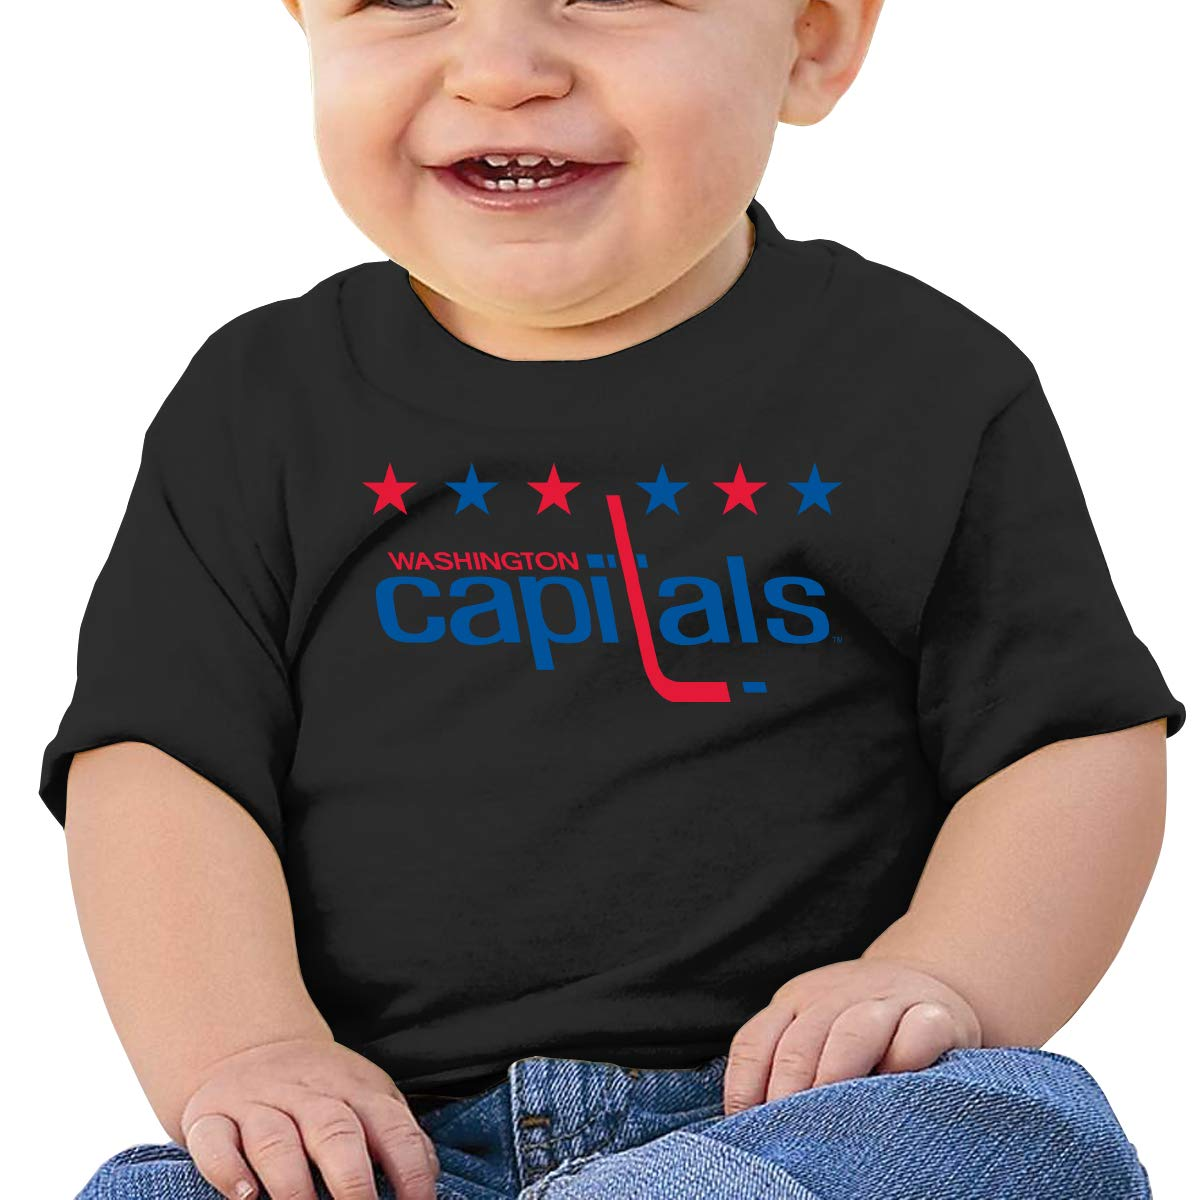 JVNSS Capital Hockey Baby T-Shirt Infant Boy Girl Cotton T Shirts Short Sleeve Graphic T-Shirt for 6M-2T Baby